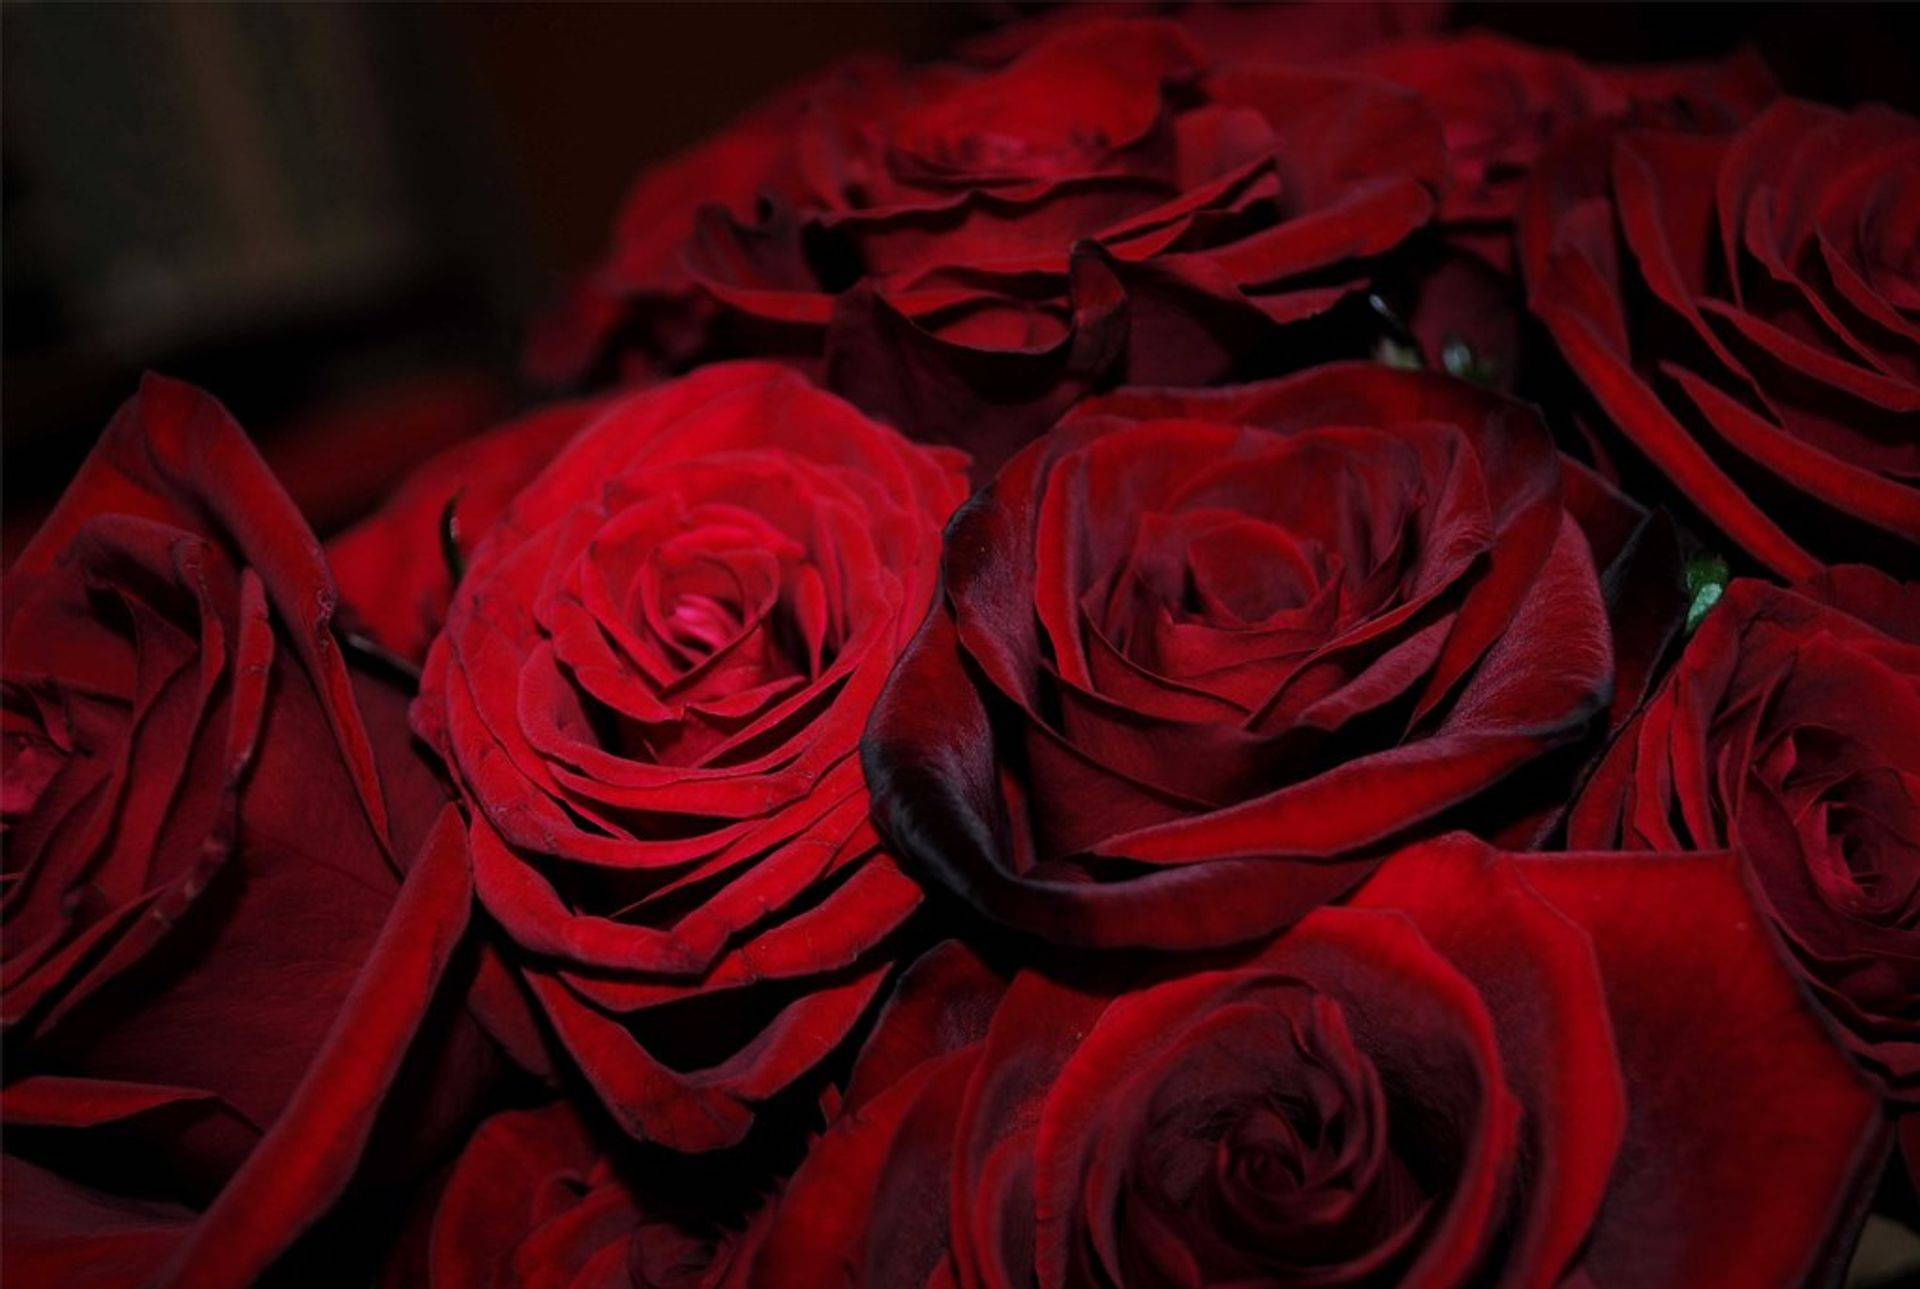 made from oil of damask roses